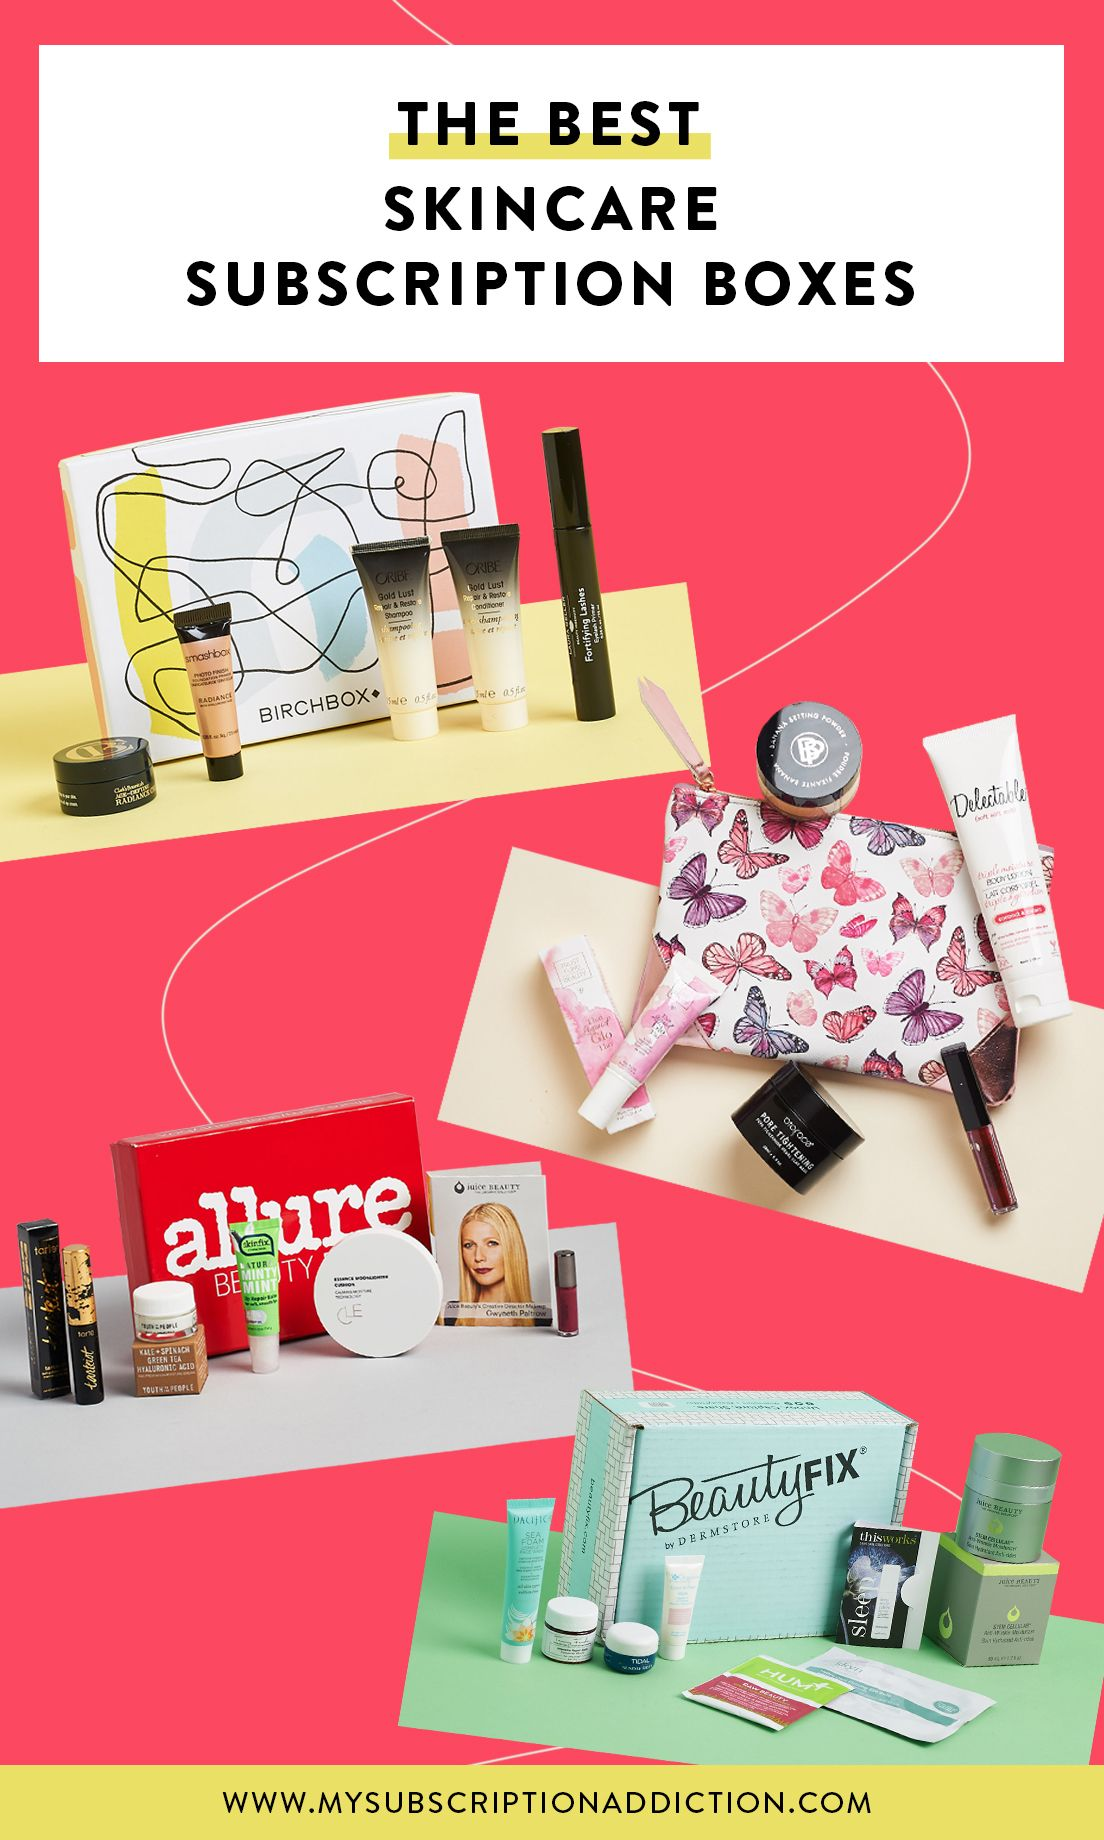 The Best Skincare Subscription Boxes Of 2018 Voted By You